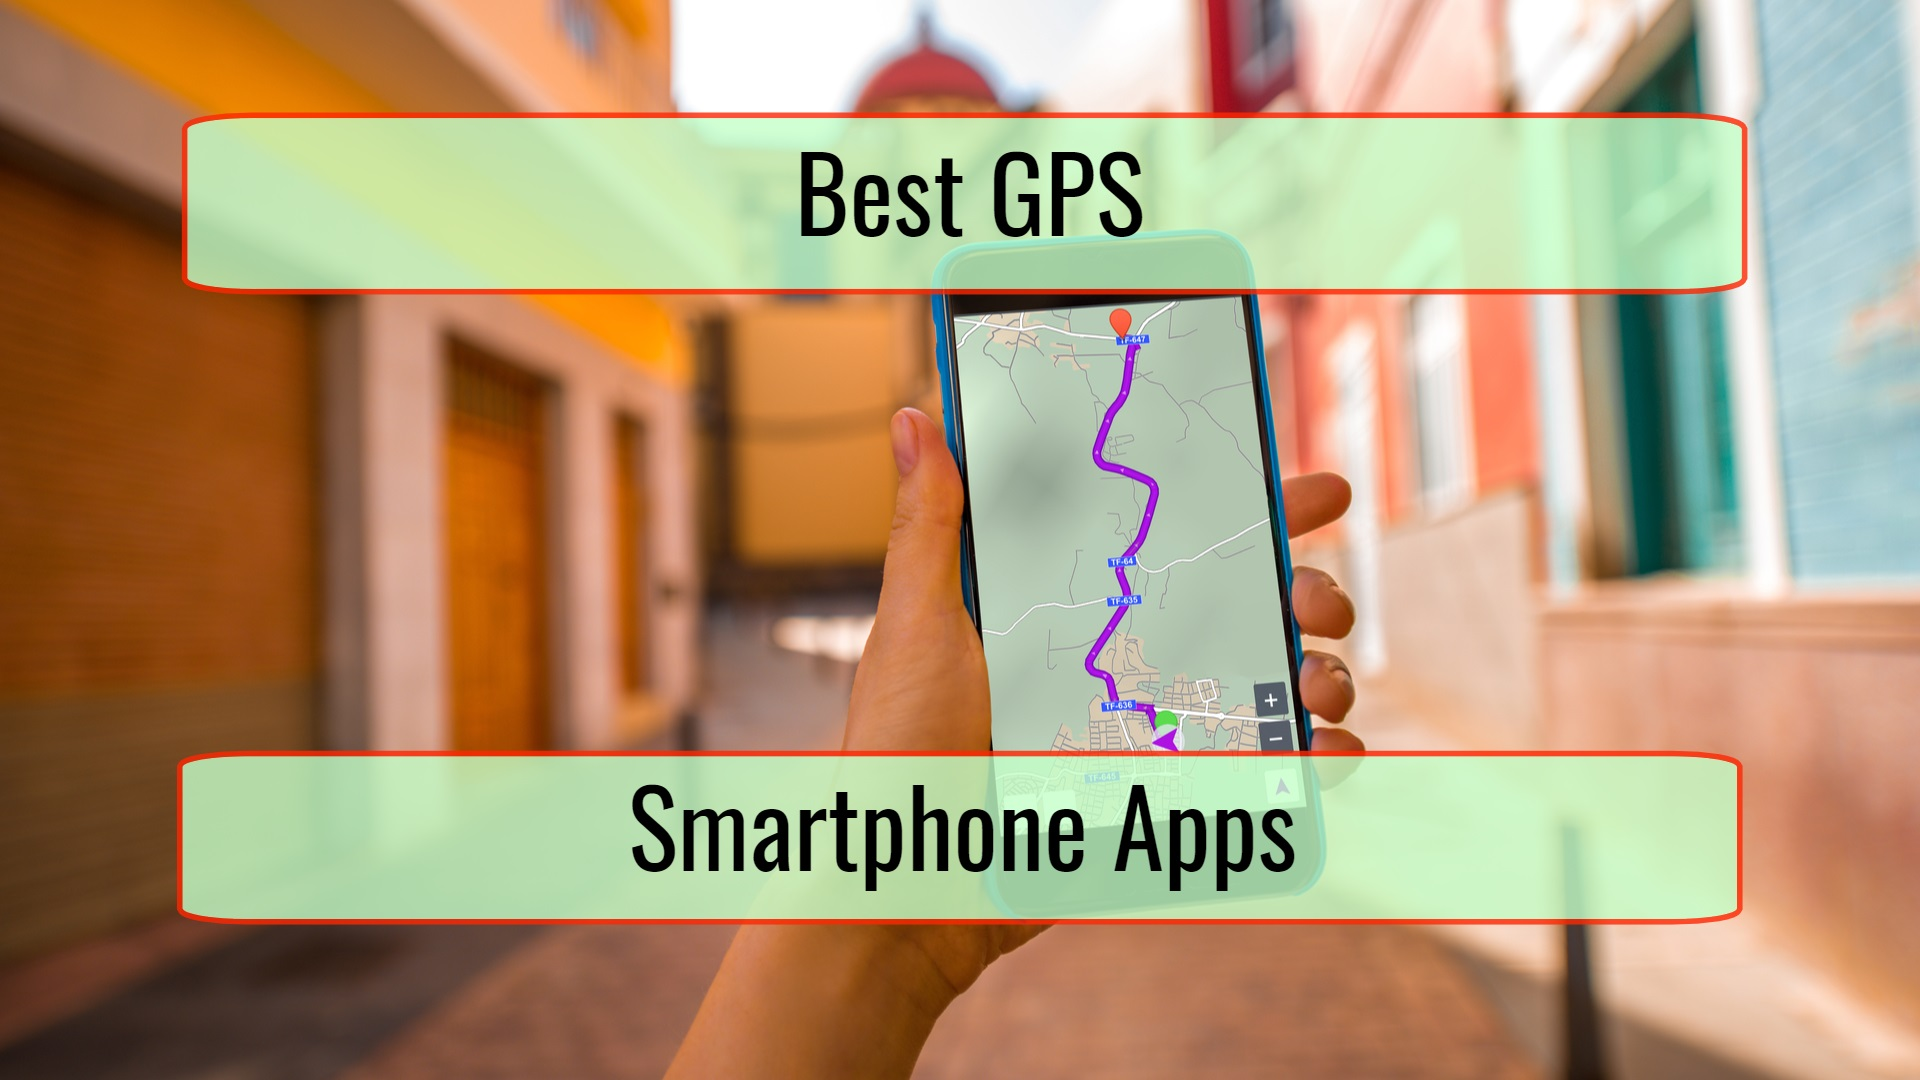 The Very Best GPS Smartphone Apps So You Never Get Lost